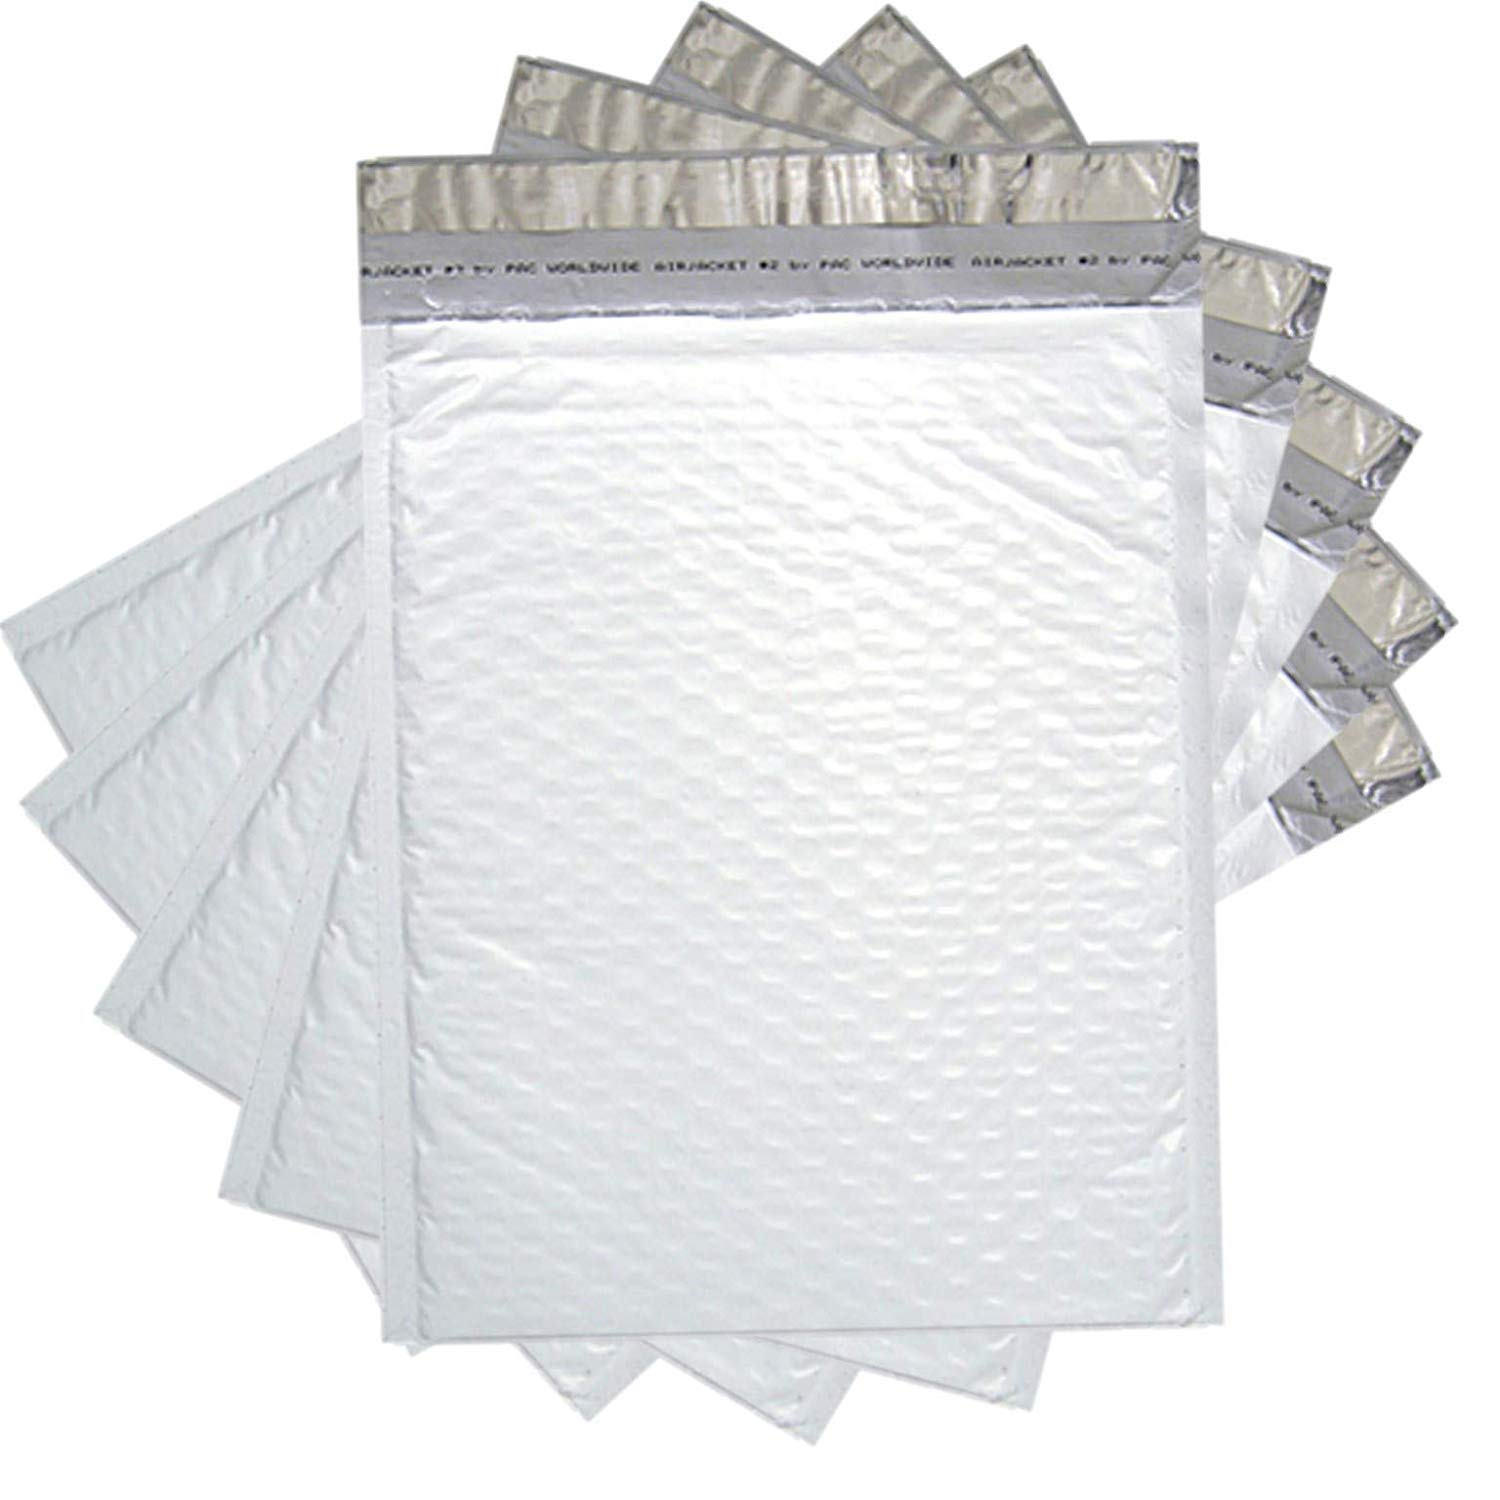 Sales4Less #5 Poly Bubble Mailers 10.5X16 Inches Padded Envelope Mailer Waterproof Pack of 100 by SALES4LESS